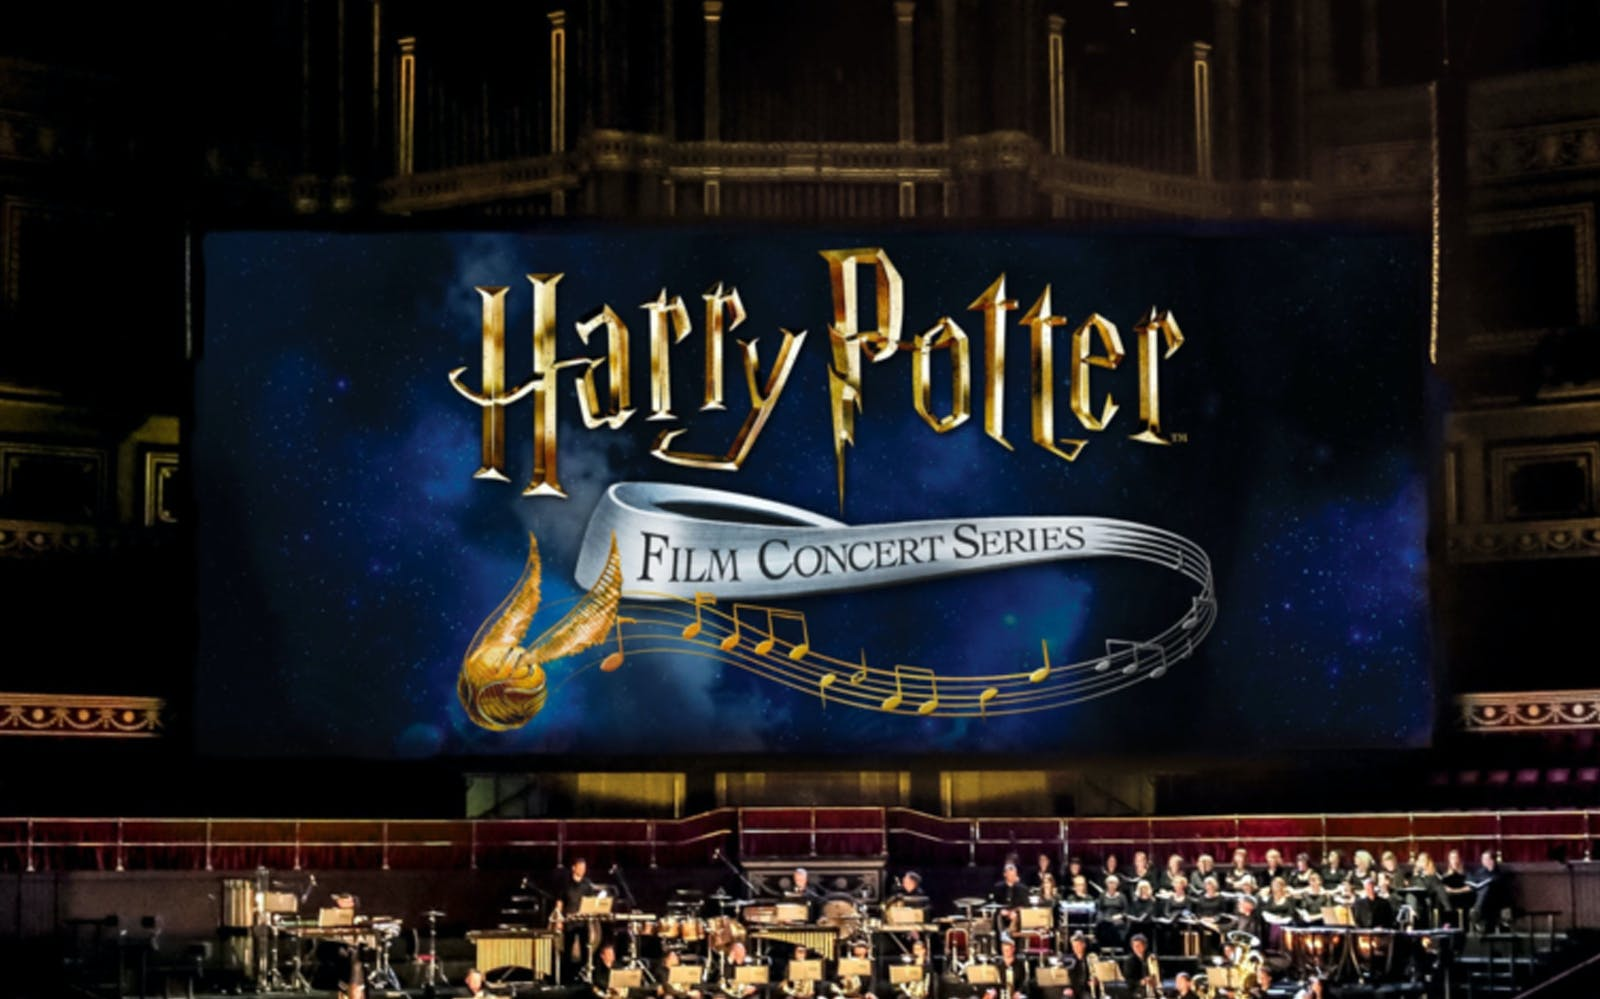 Harry Potter™ in Concert at the MGM Cotai Theater in Macau